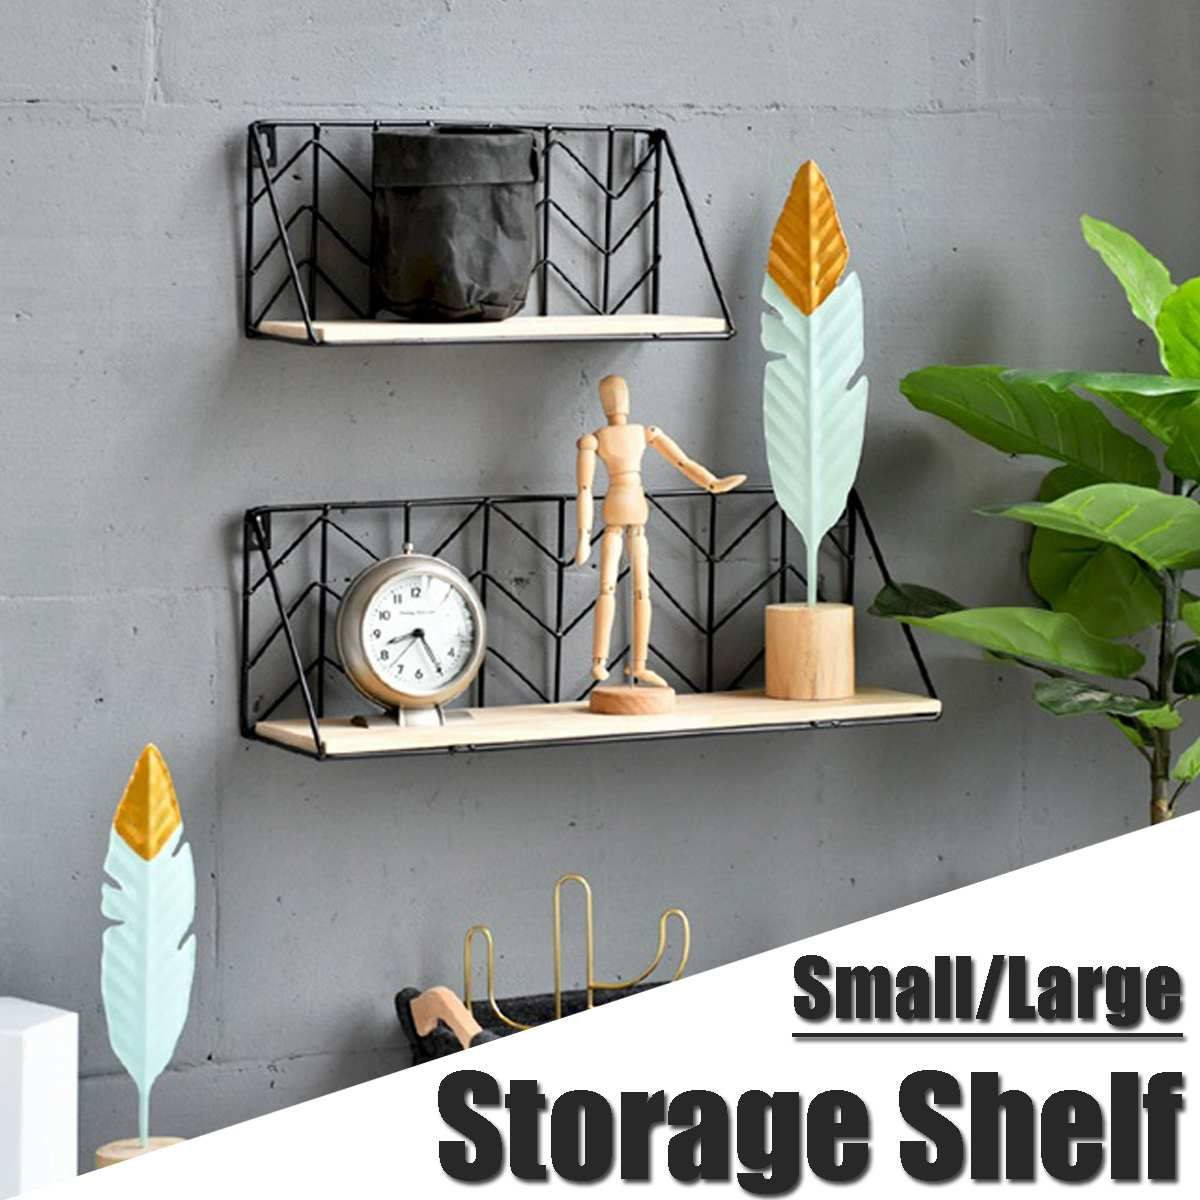 Nordic Style Shelves Wall Decoration Storage Shelf Wall Mounted Hanging Iron Flower Holder St V 2020 G Nastennye Polki Ukrashenie Sten Svoimi Rukami Idei Dlya Ukrasheniya